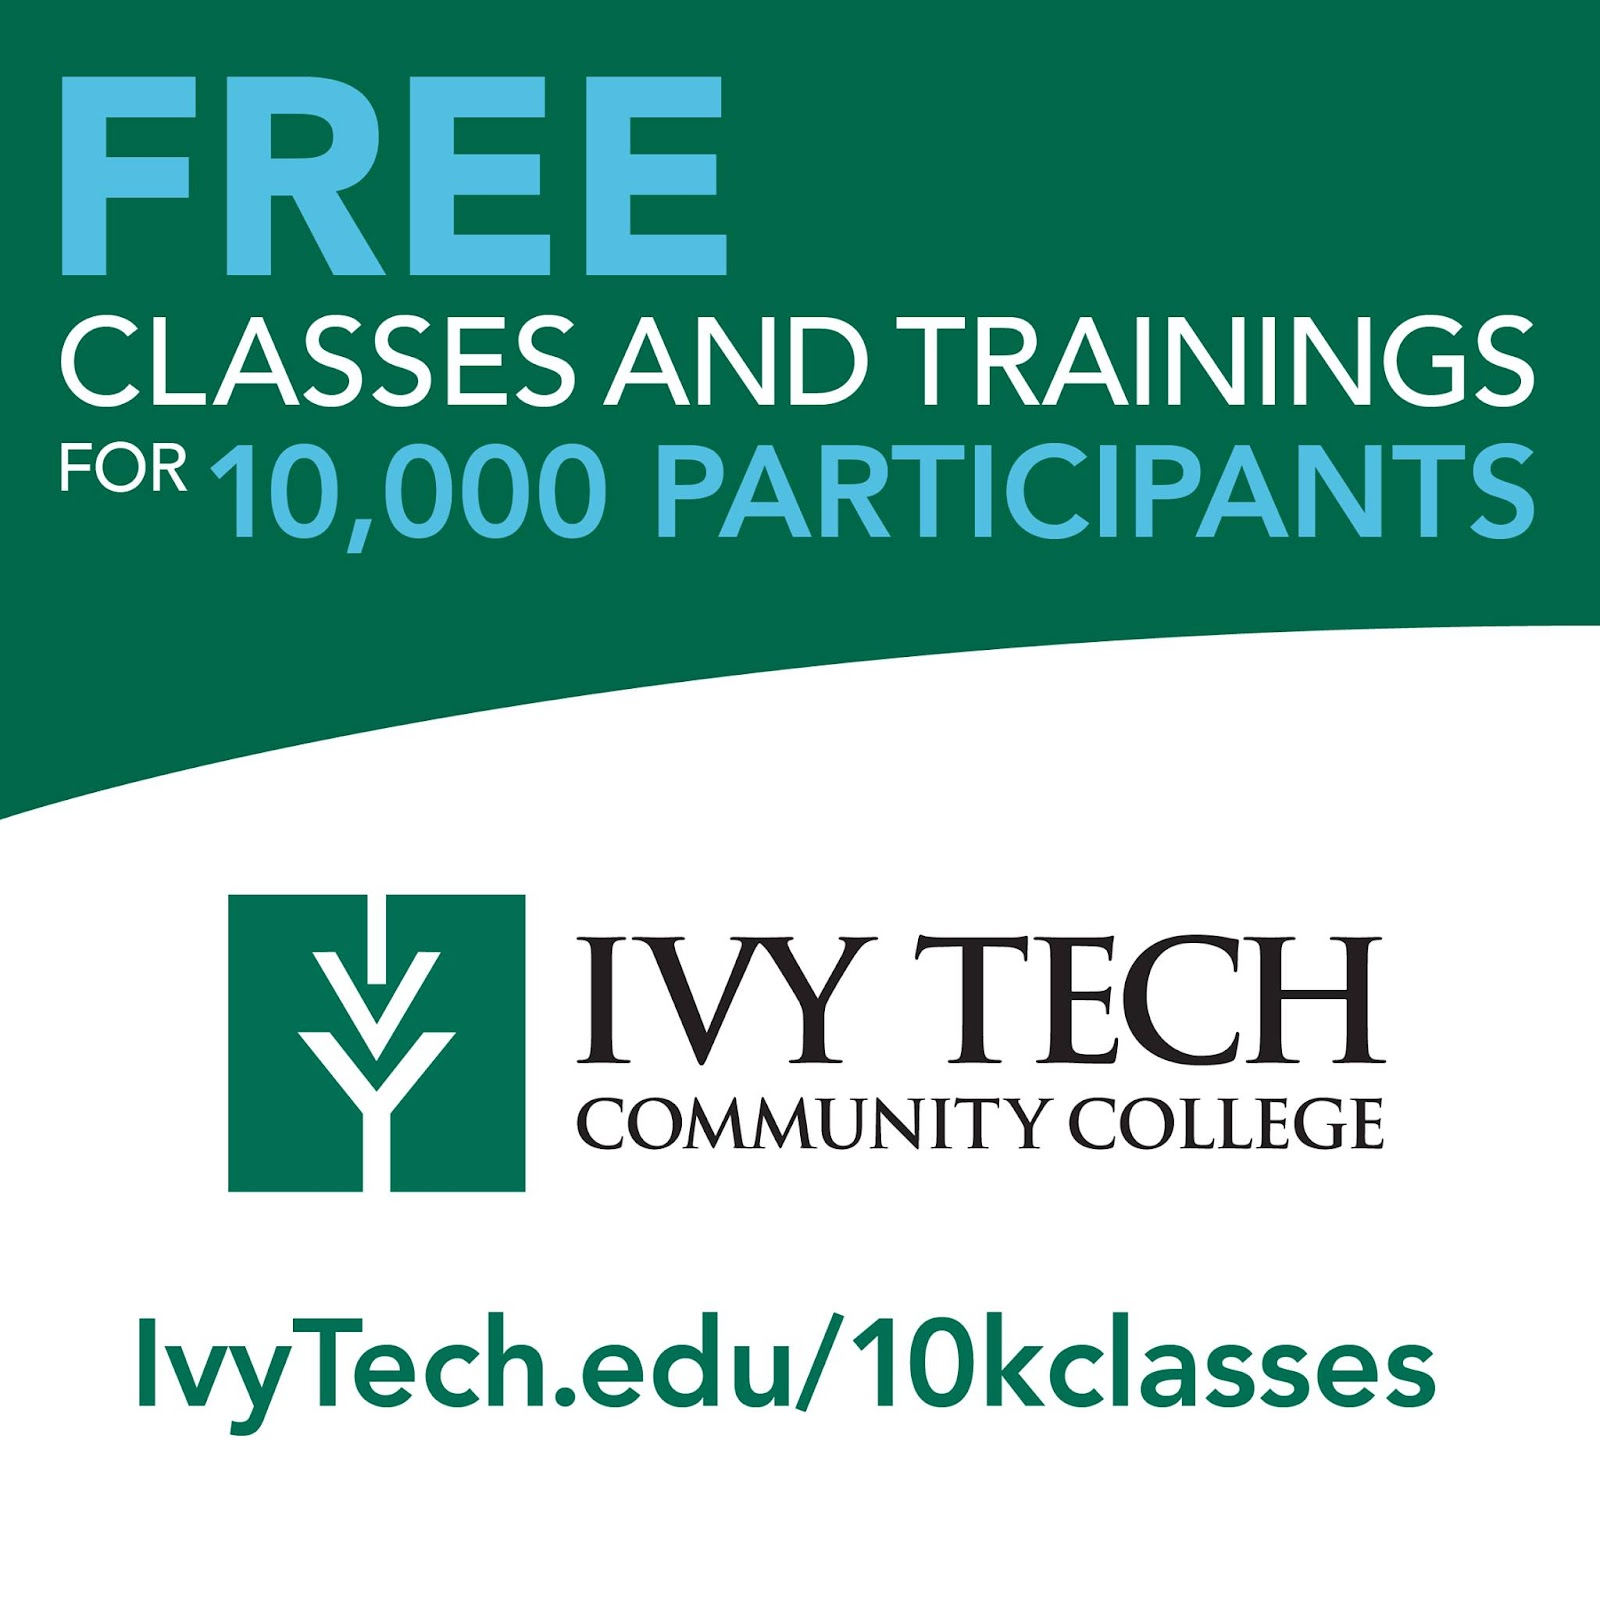 Ivy tech classes